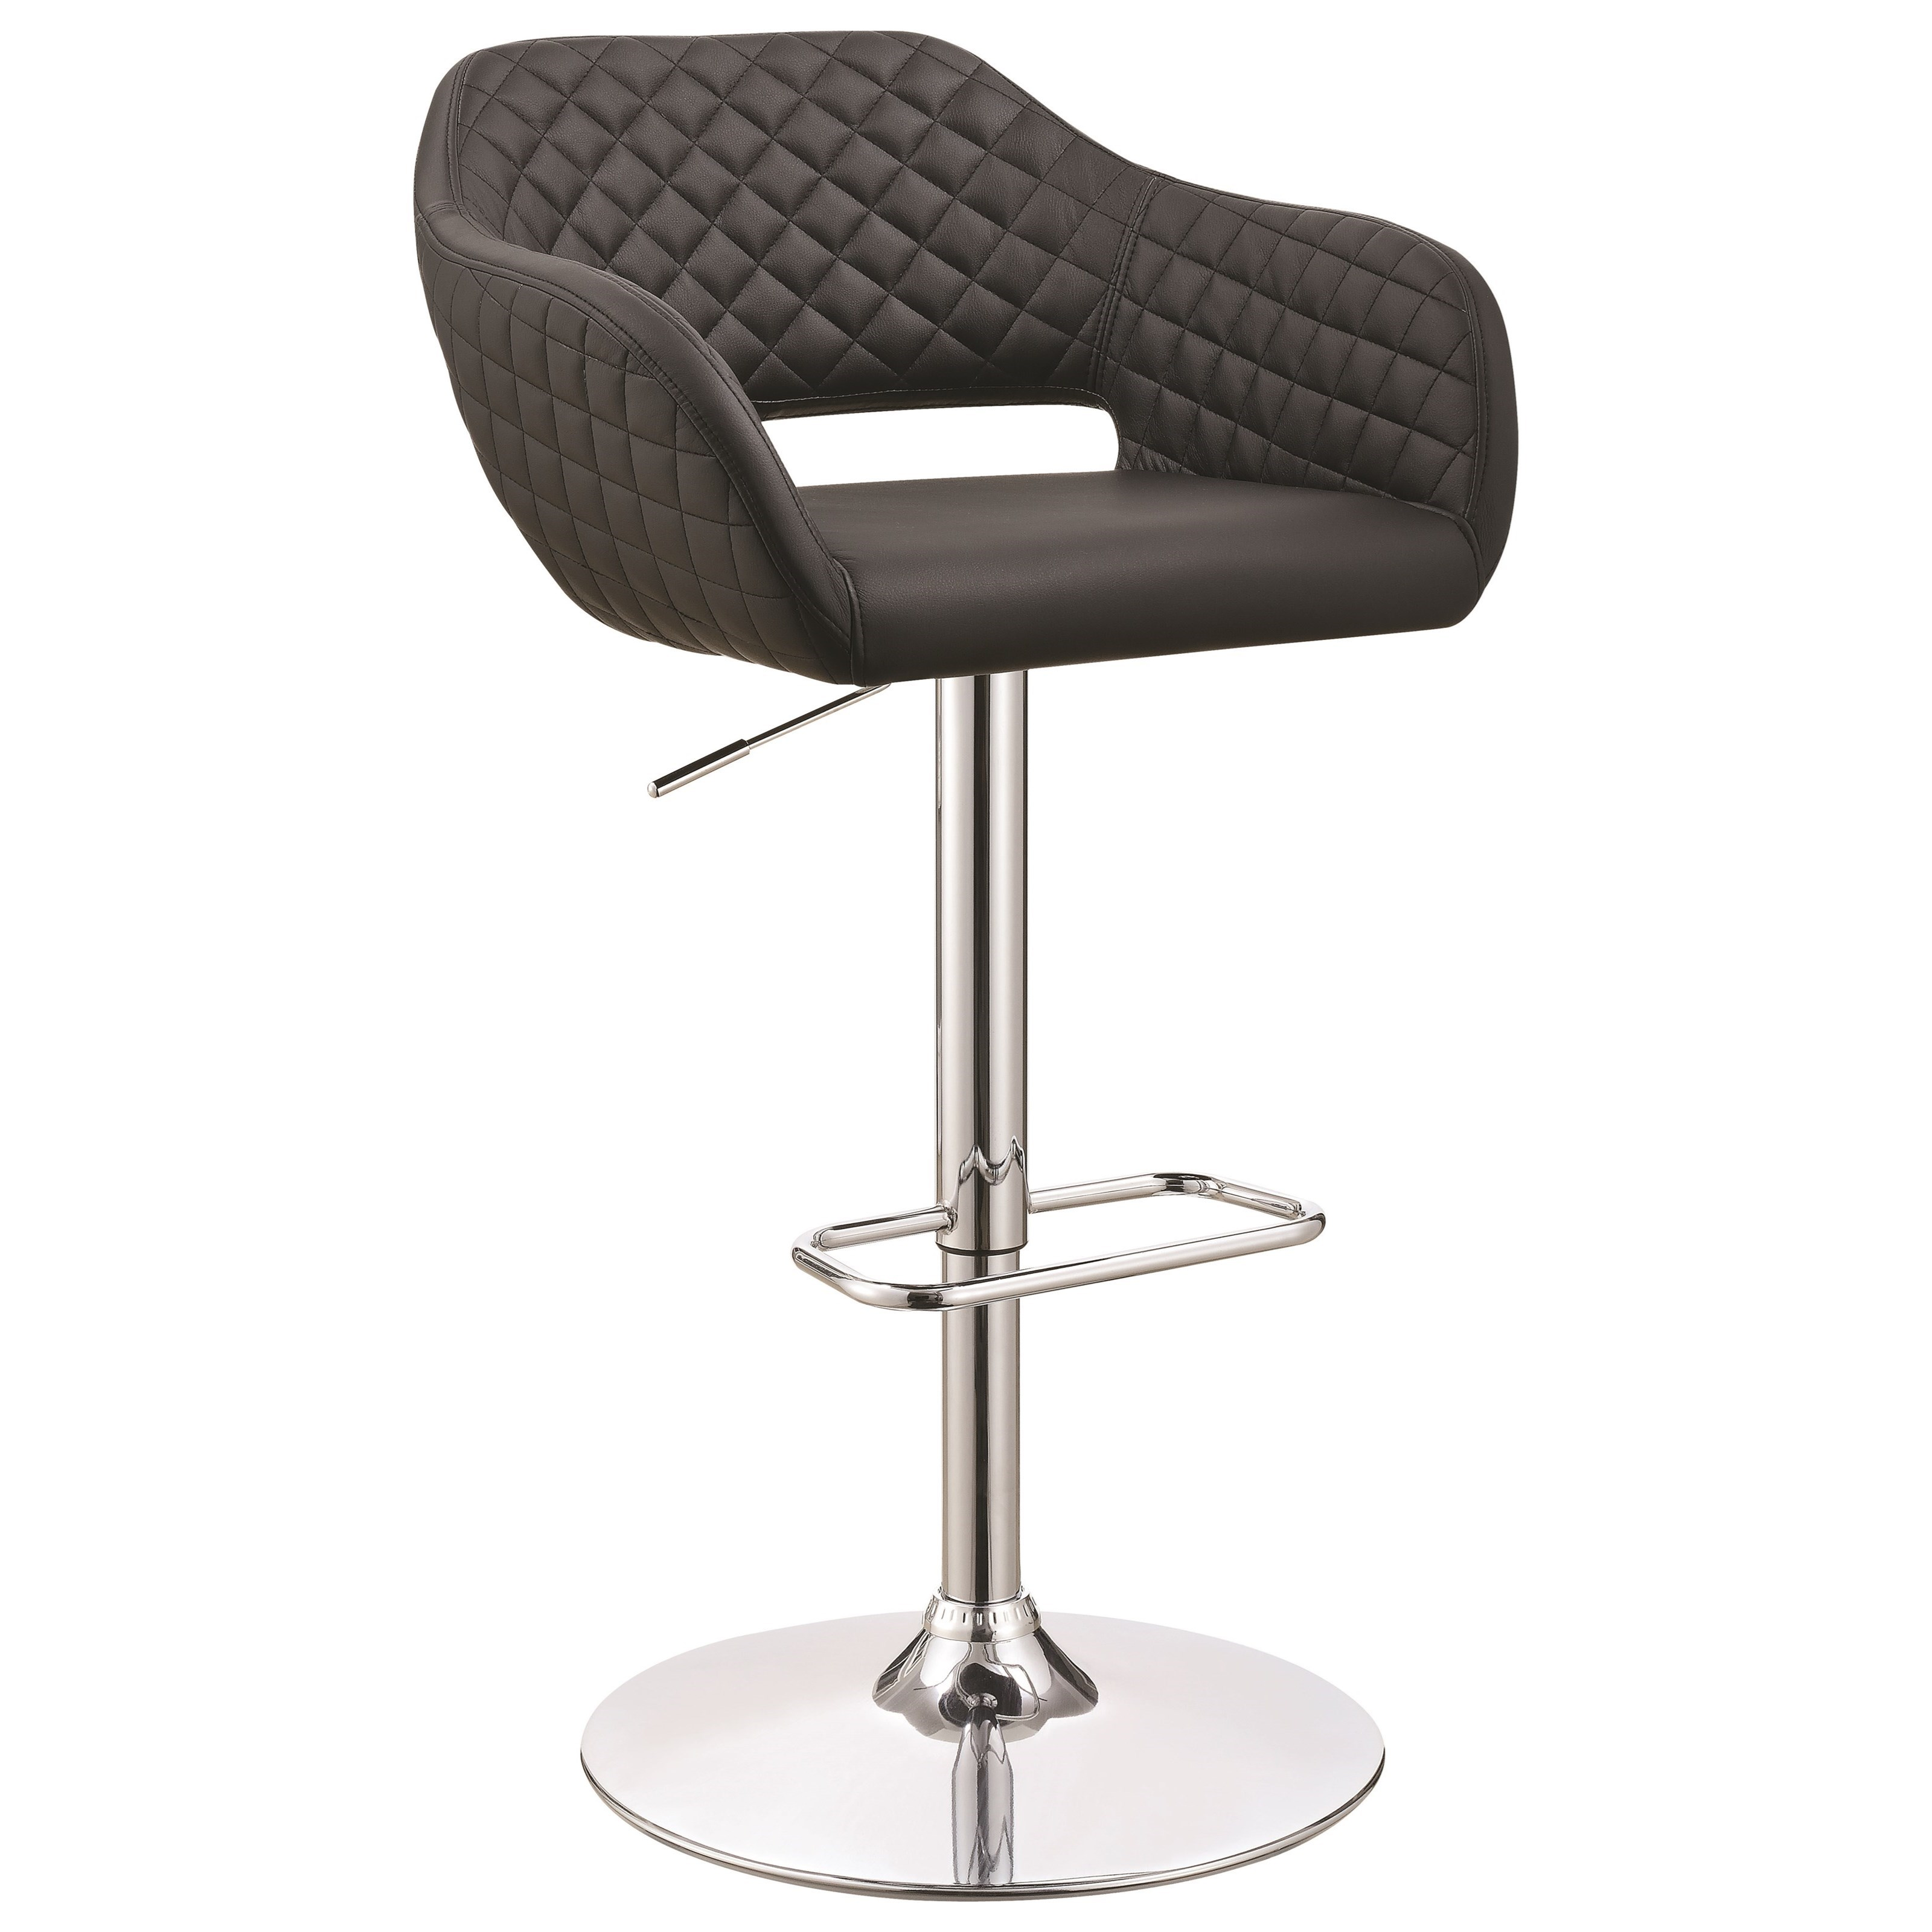 Coaster Dining Chairs and Bar Stools Bar Stool - Item Number: 100828